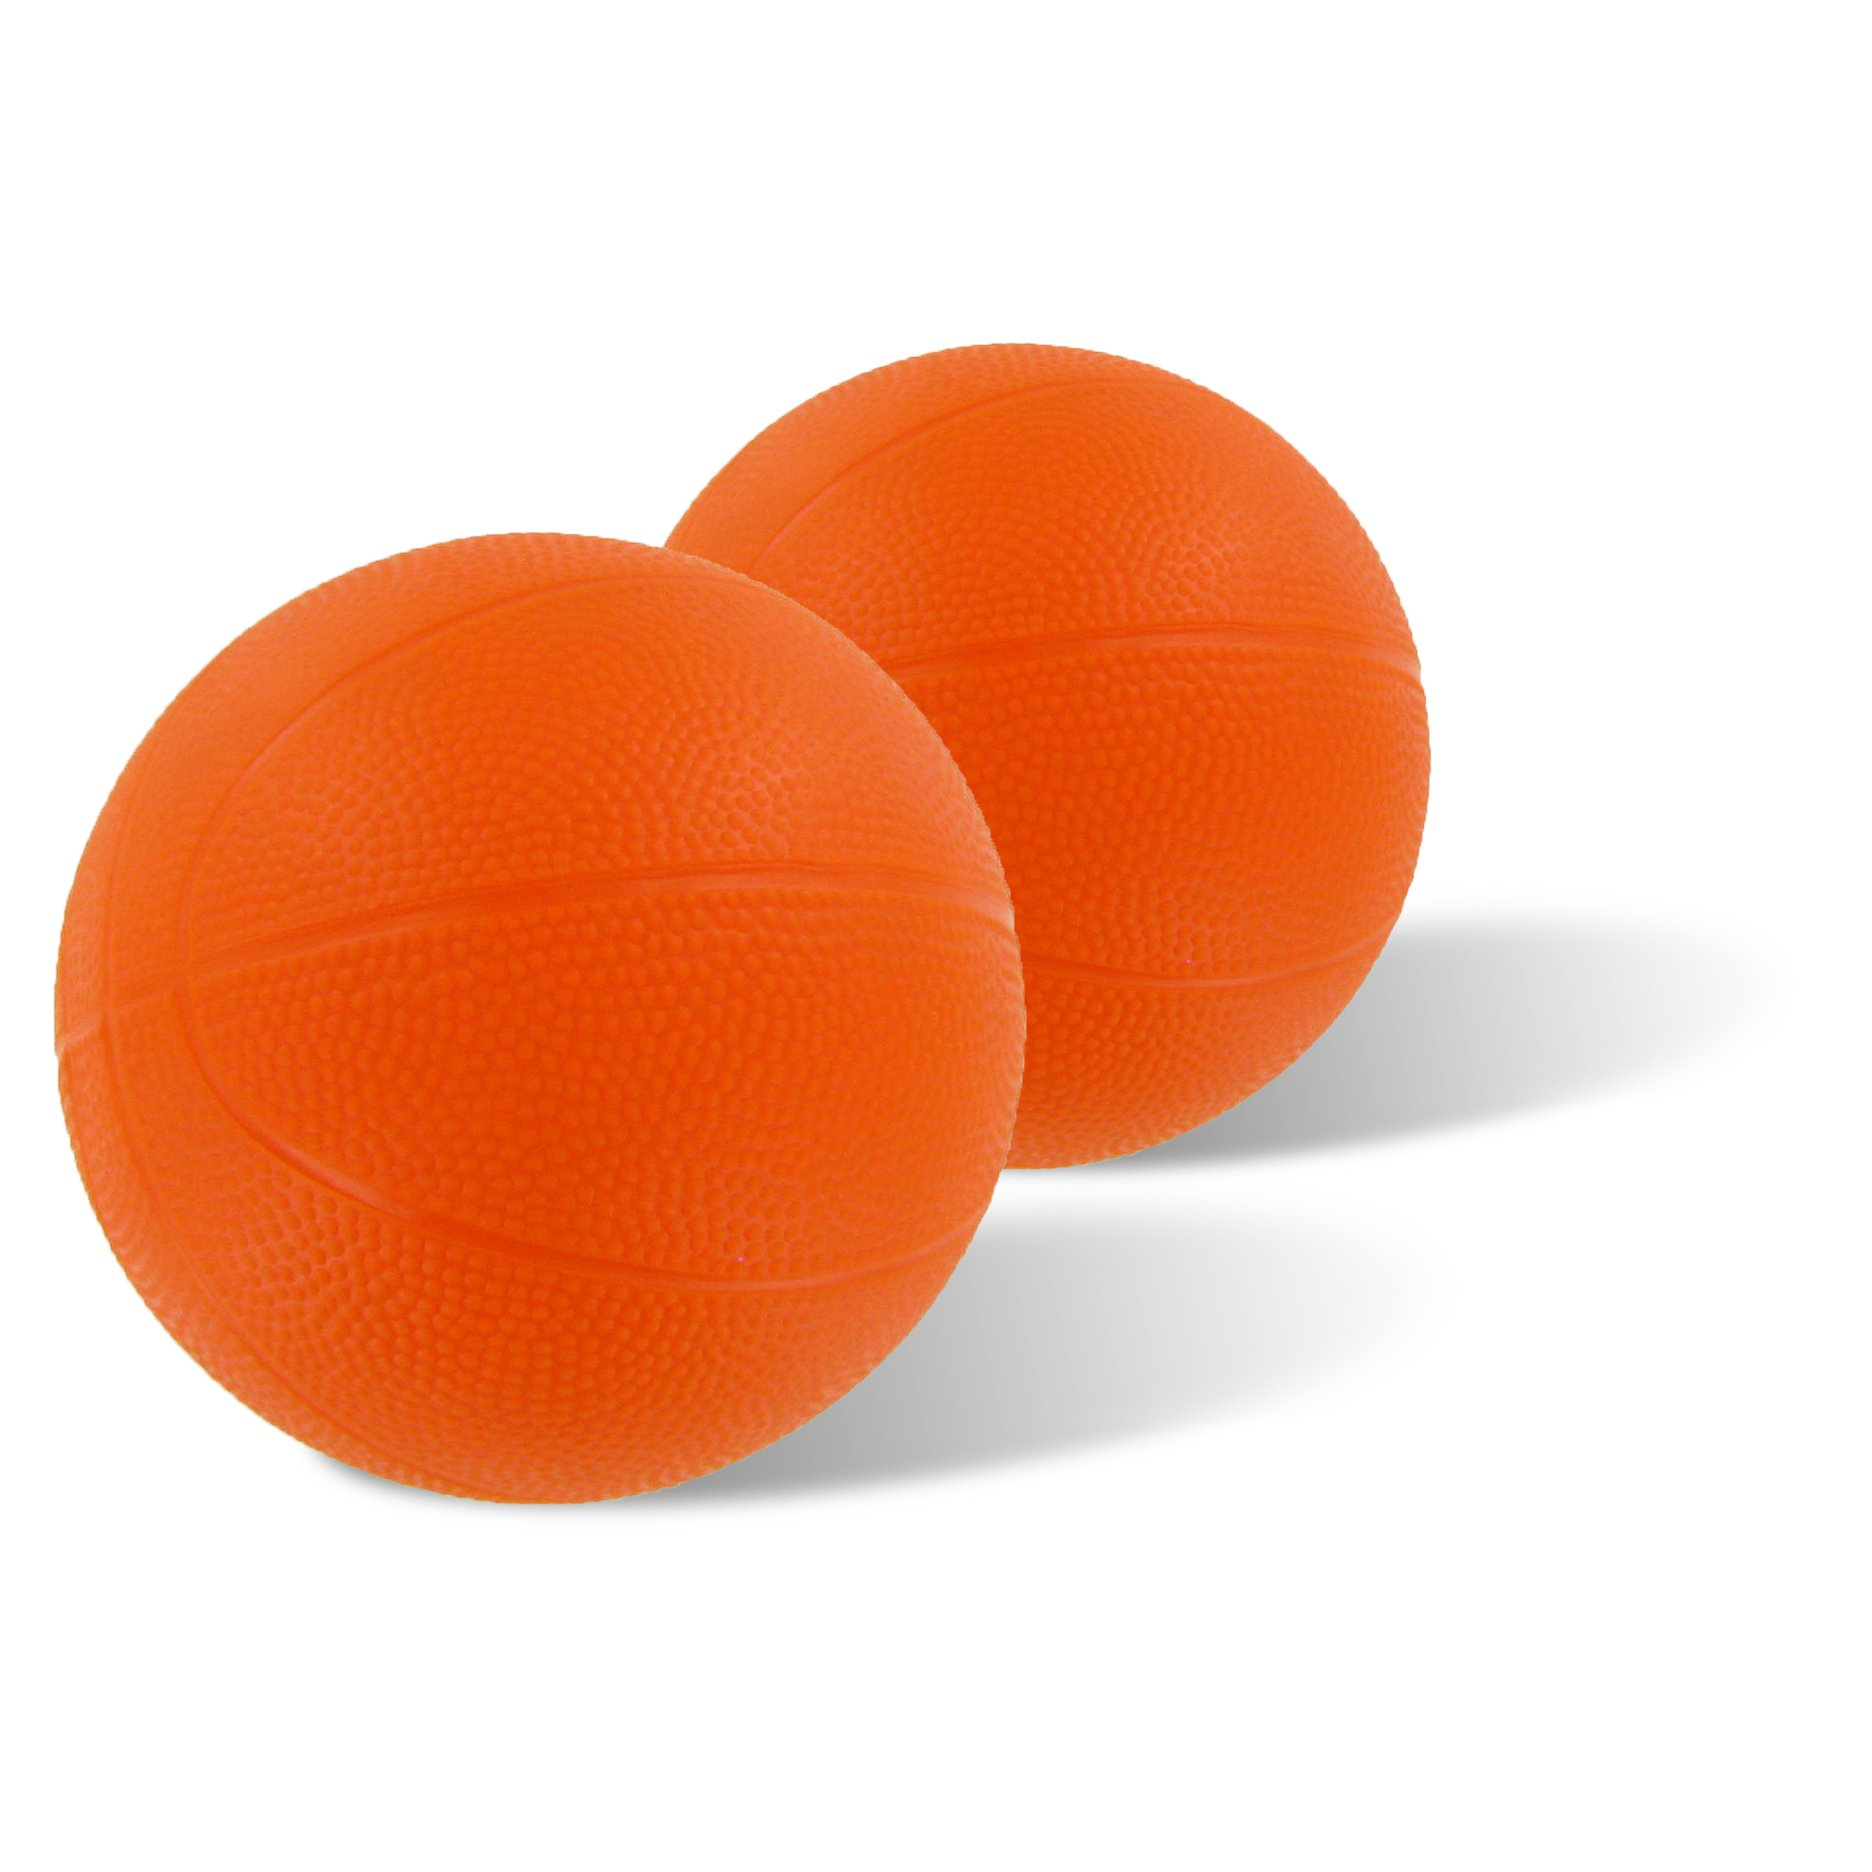 Toddler & Little Kids Replacement Basketball - For Little Tikes EasyScore - 2 Pack by Botabee